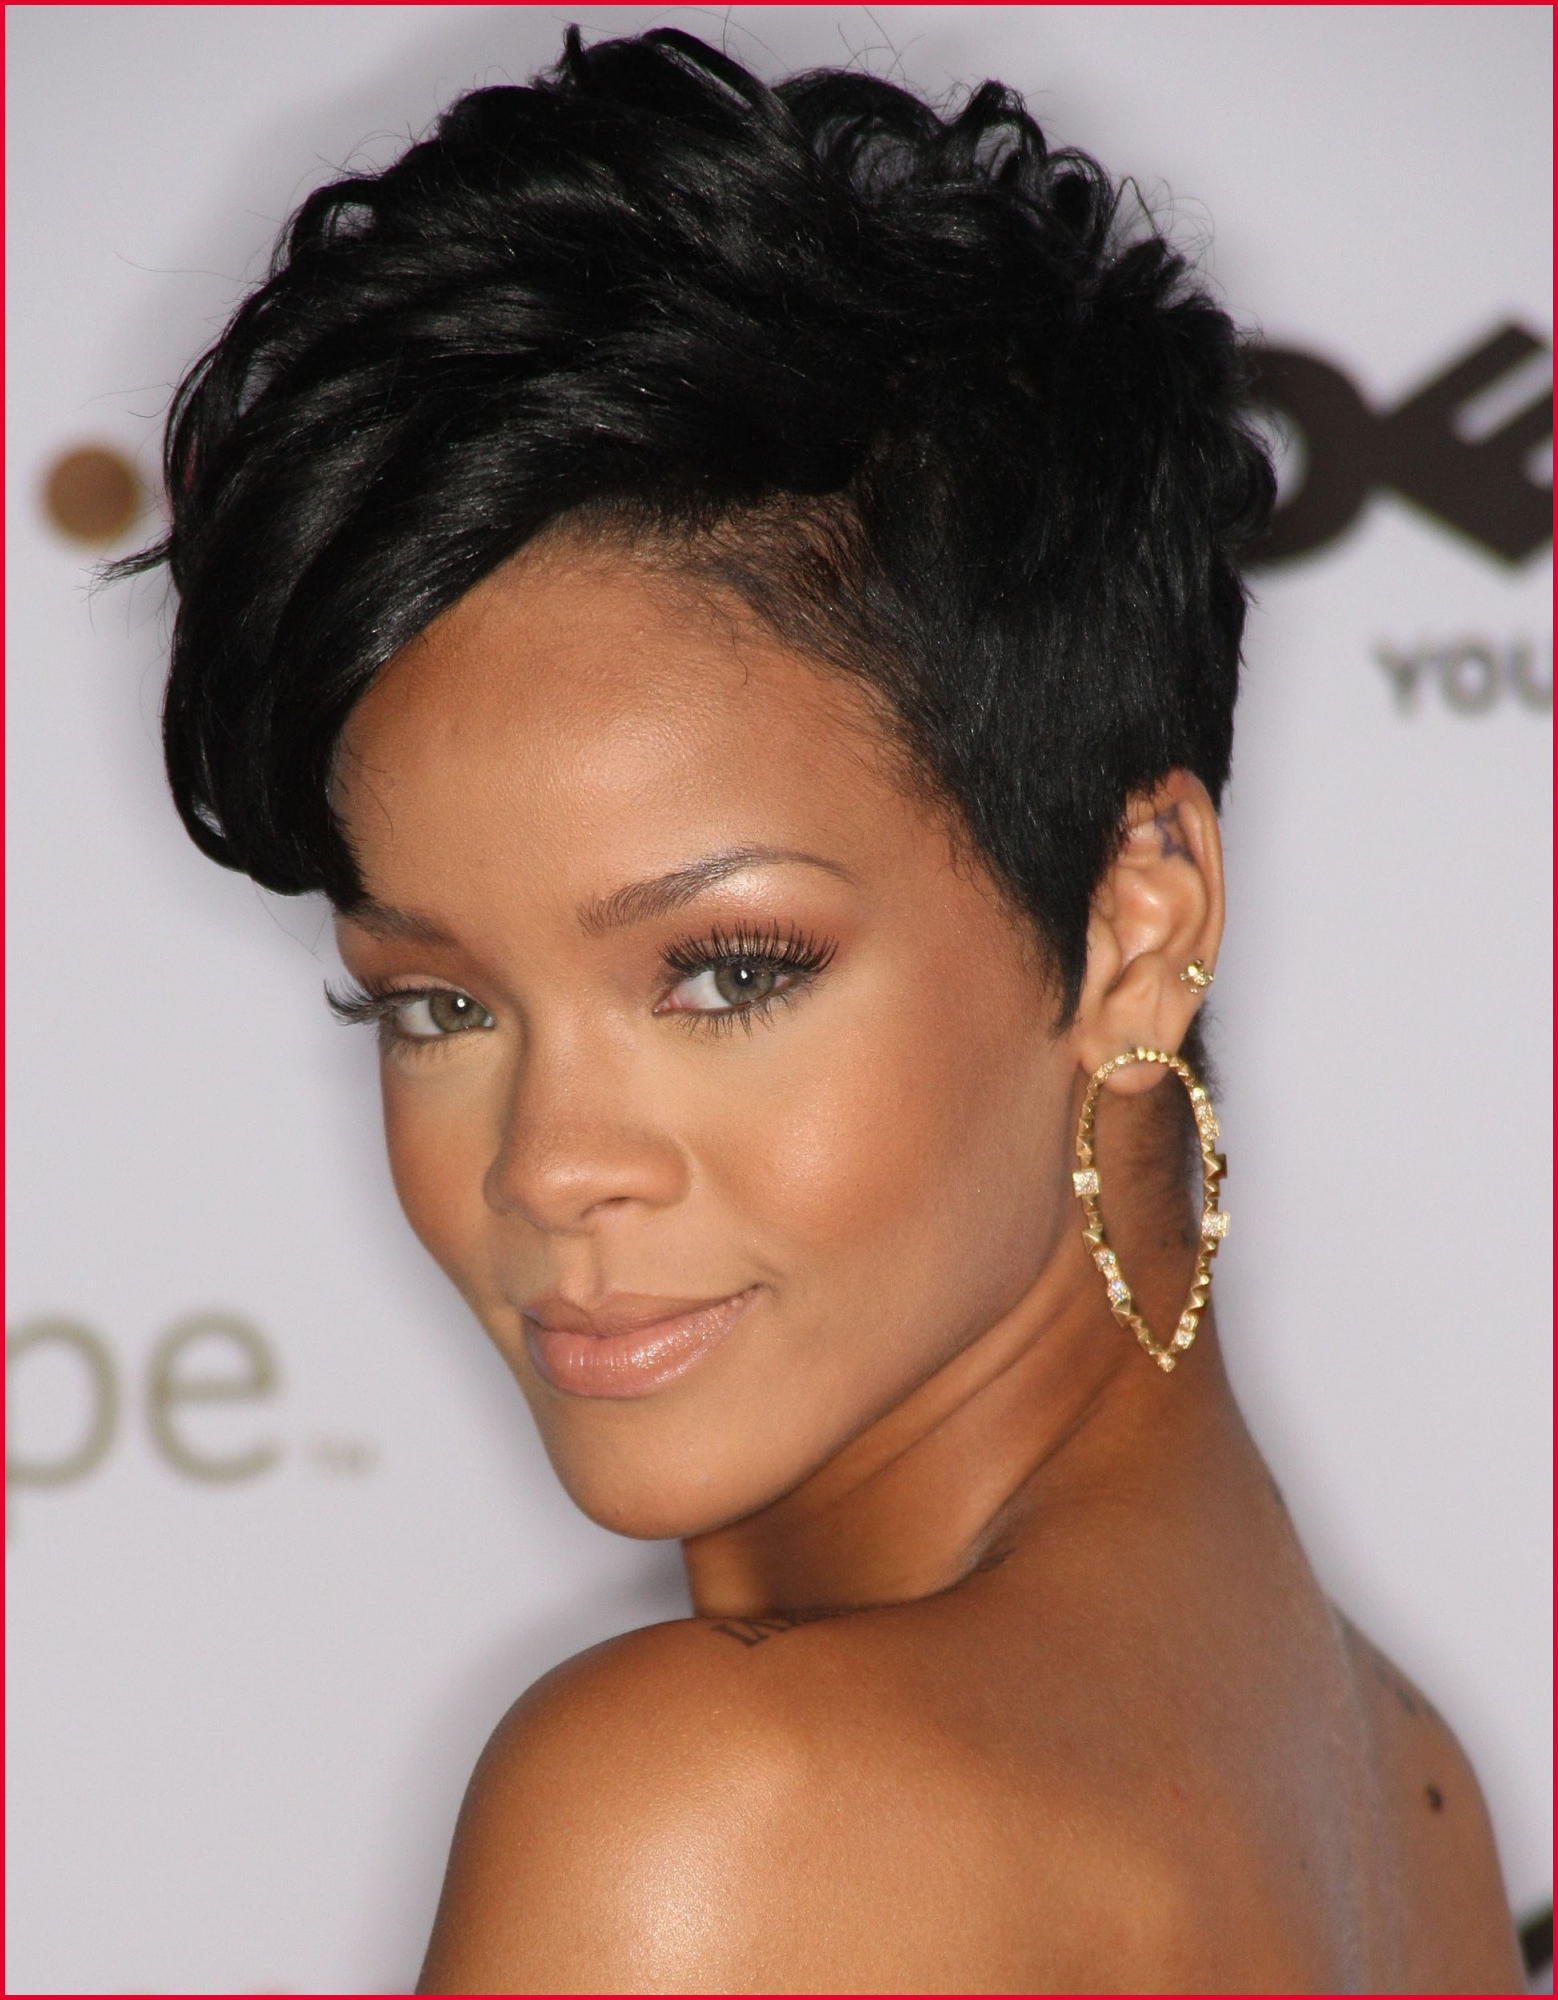 Short Weave Hairstyles For Long Faces 264797 Short Weave Hairstyles Intended For Short Weaves For Oval Faces (View 23 of 25)